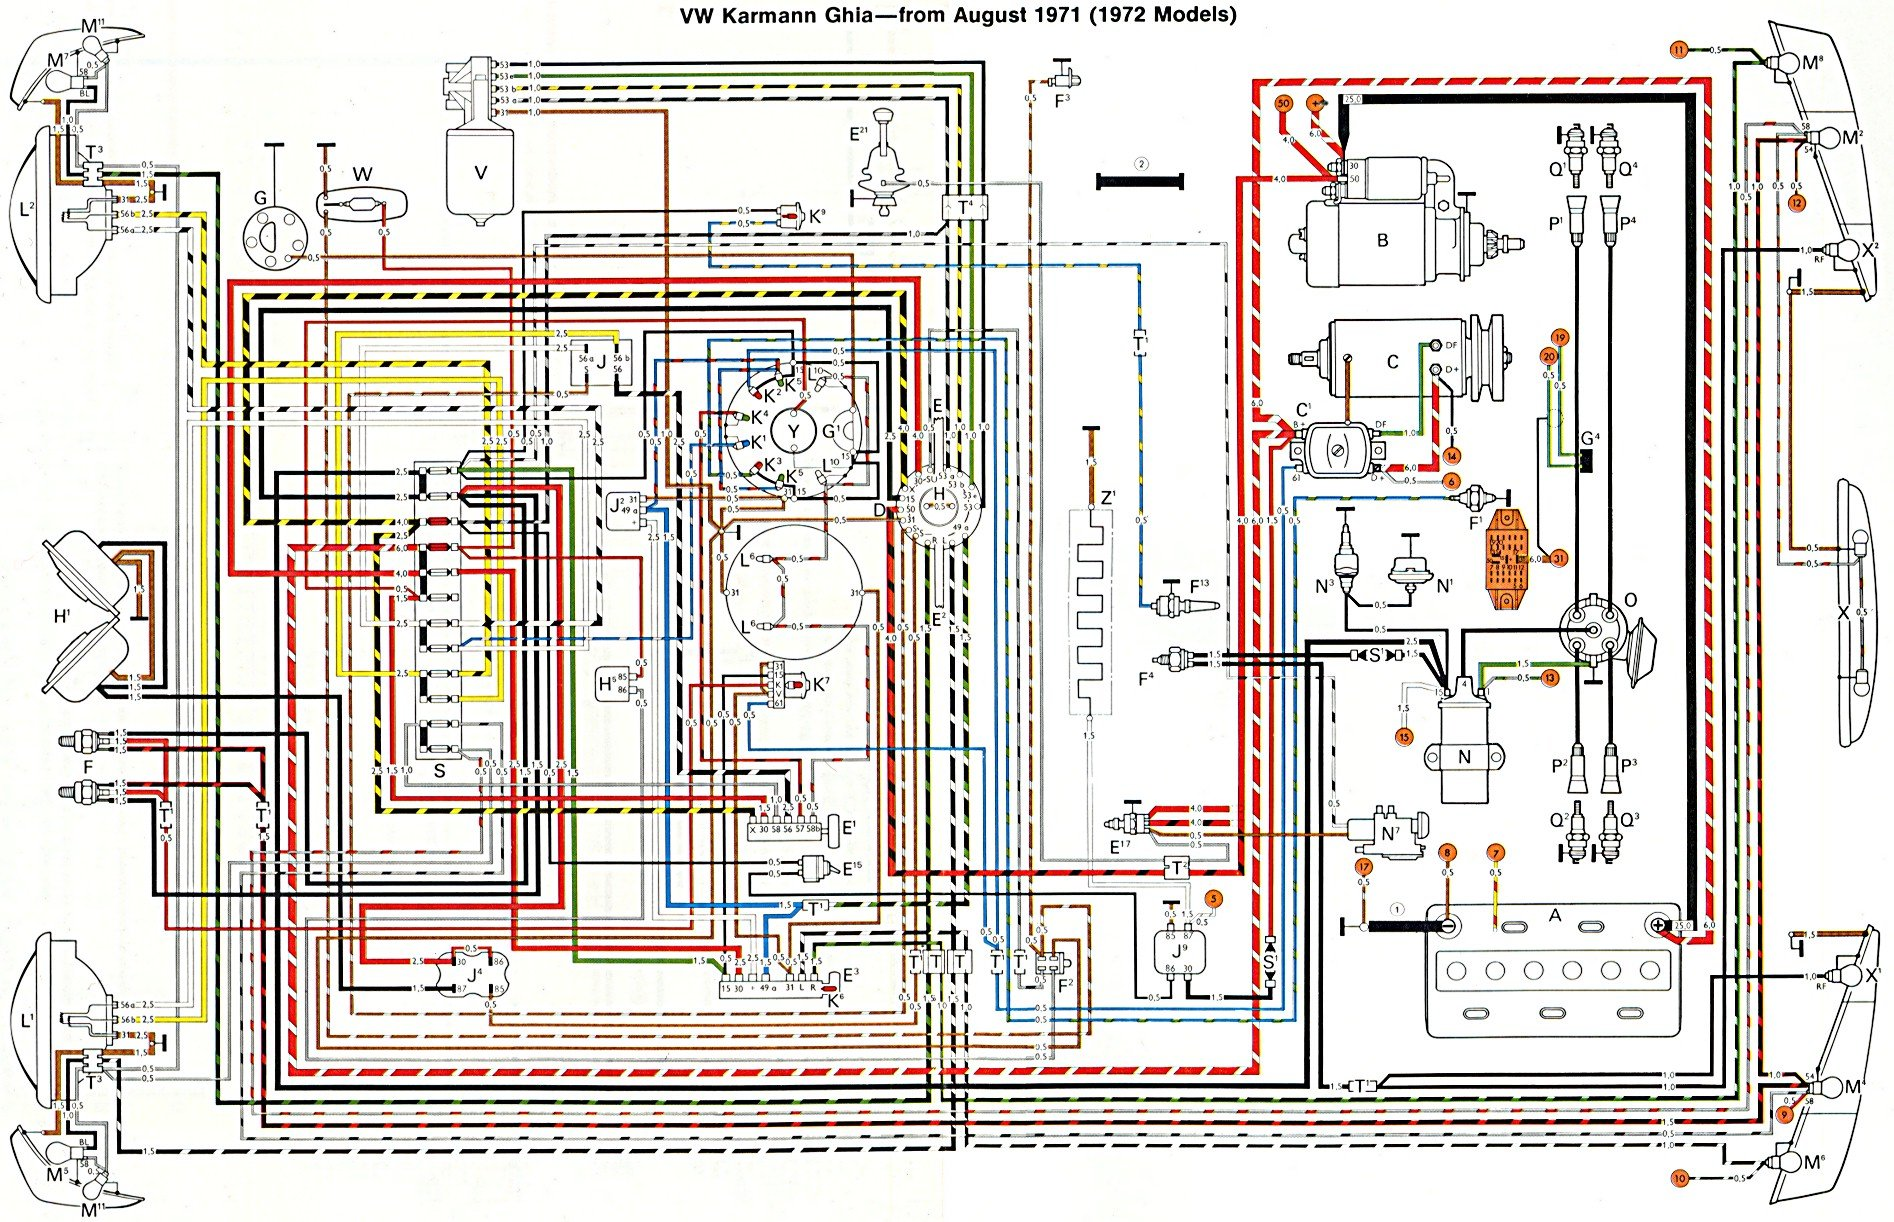 Chevelle Horn Relay Wiring moreover Ford Gran Torino furthermore 1964 Ford Thunderbird 390 Engines together with Dodge Nitro 2008 Radio Harness Diagram furthermore Matte Black Plymouth Road Runner. on 1969 ford ranchero wiring diagram